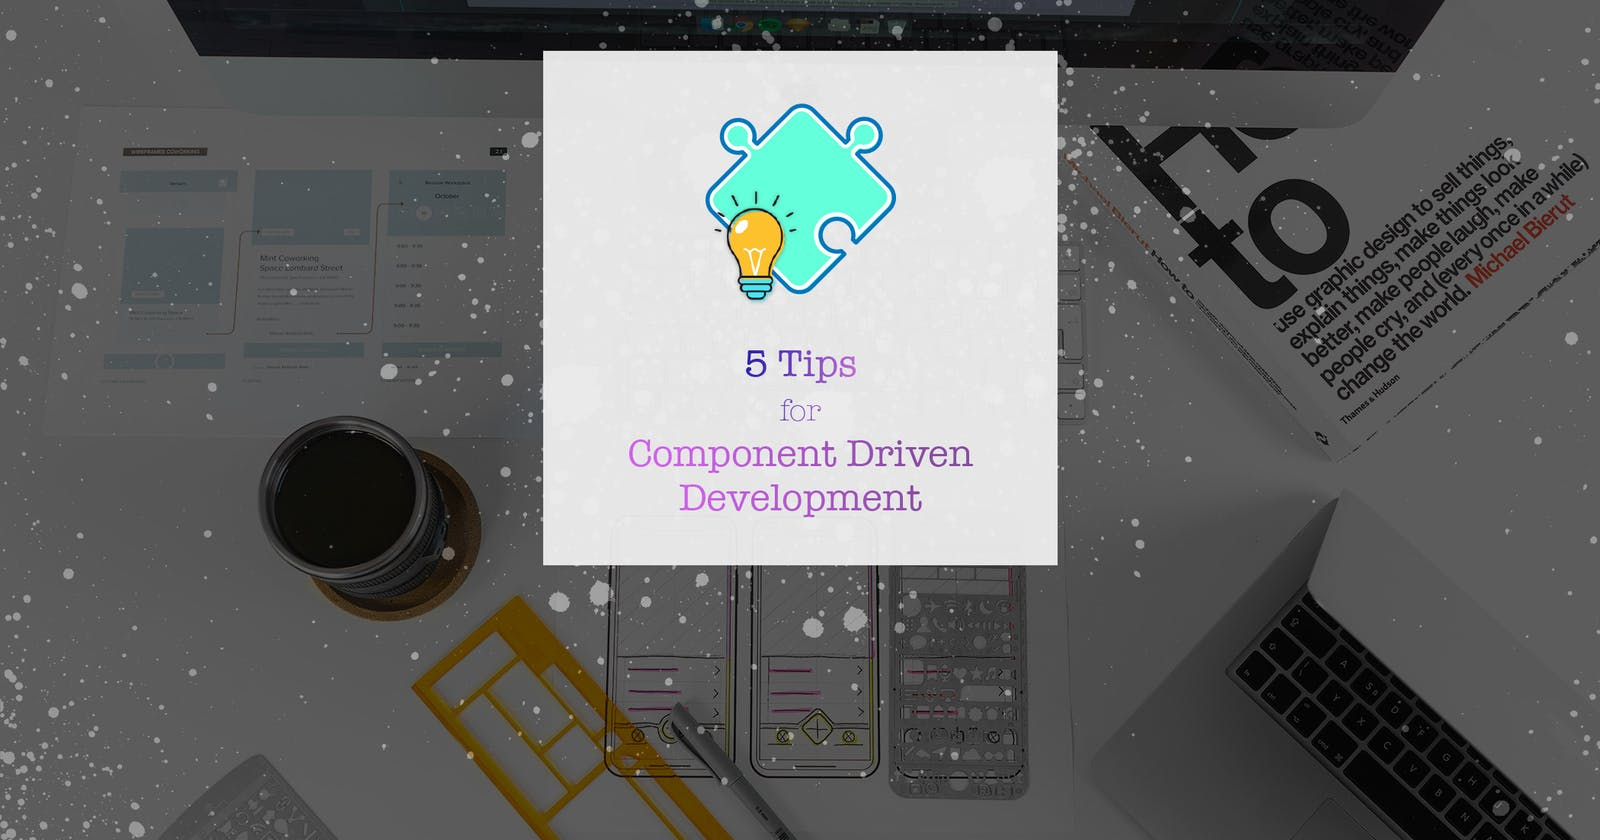 5 Tips for Component Based Development